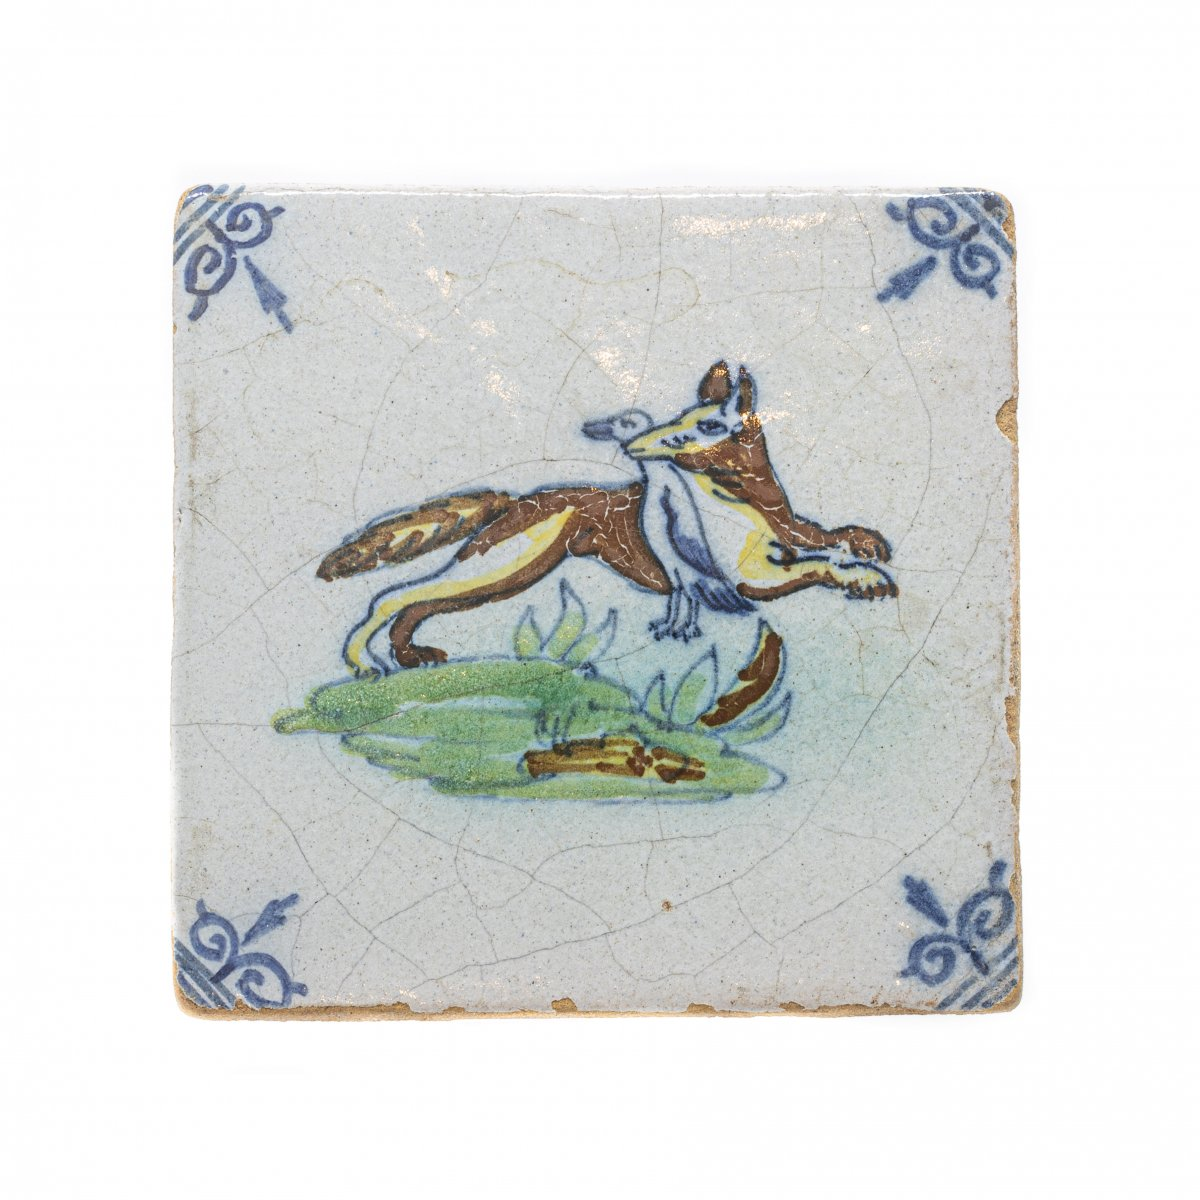 A Fox Holding A Duck - Netherlands, 2nd Half Of The 17th Century